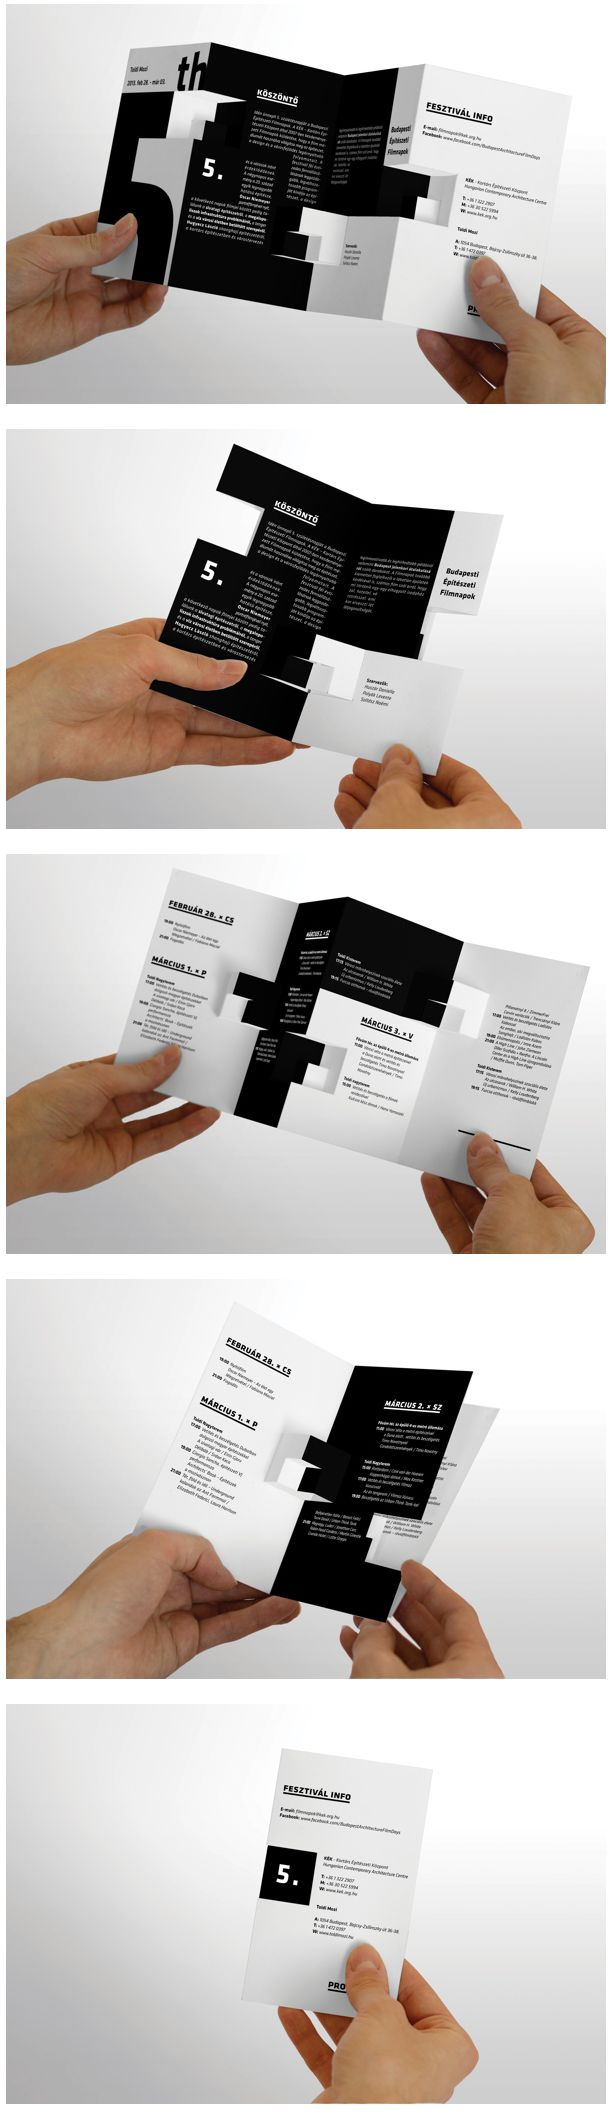 5. Budapest Architecture Film Festival Brochure on Behance